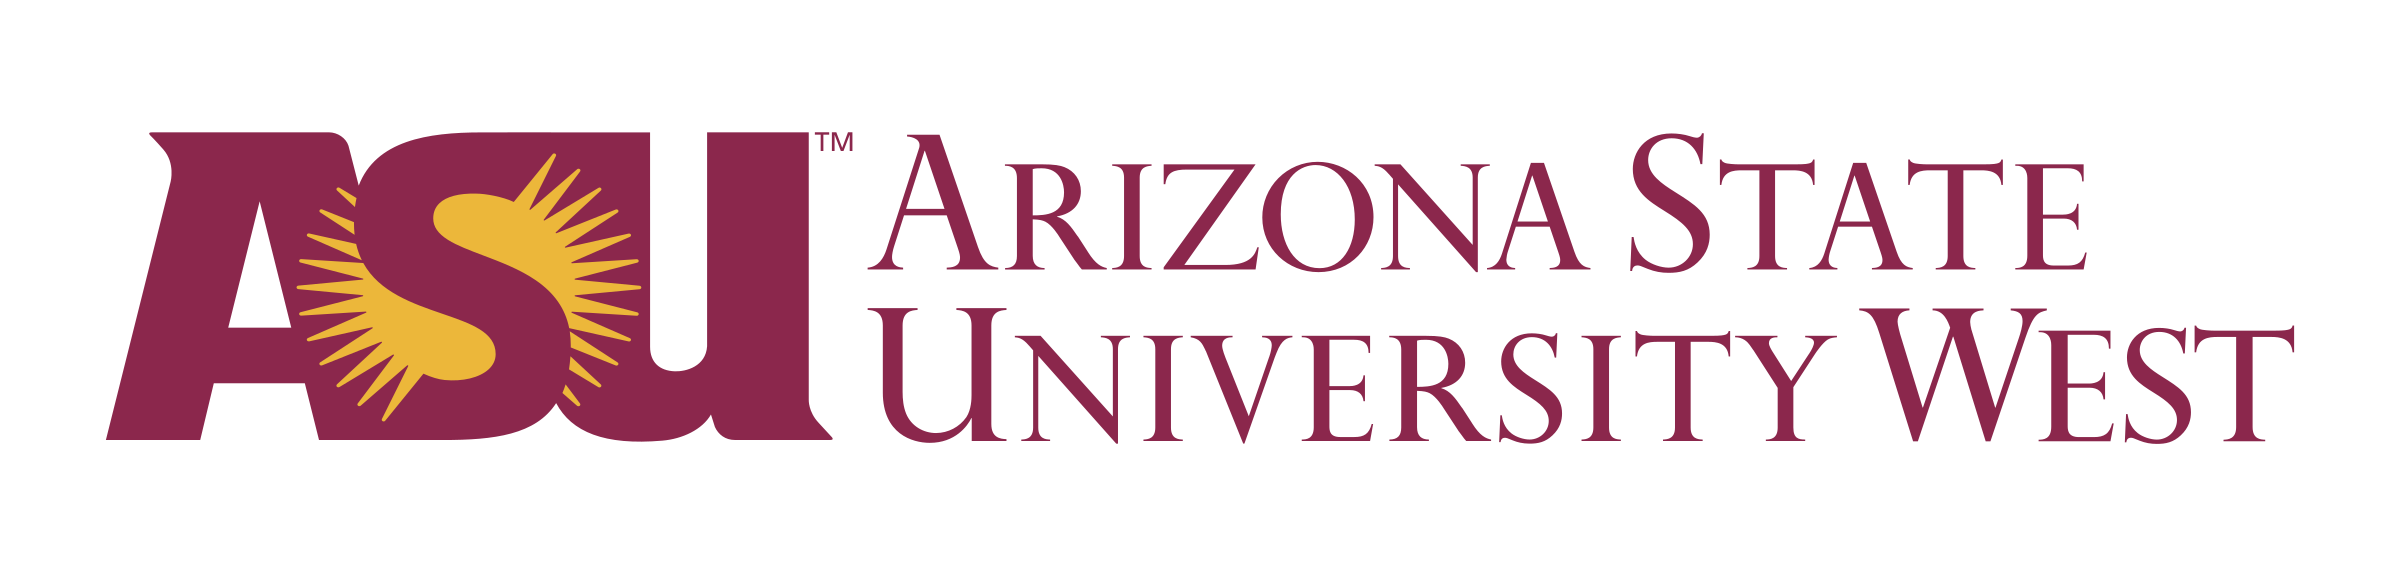 asu-west-03-logo-png-transparent